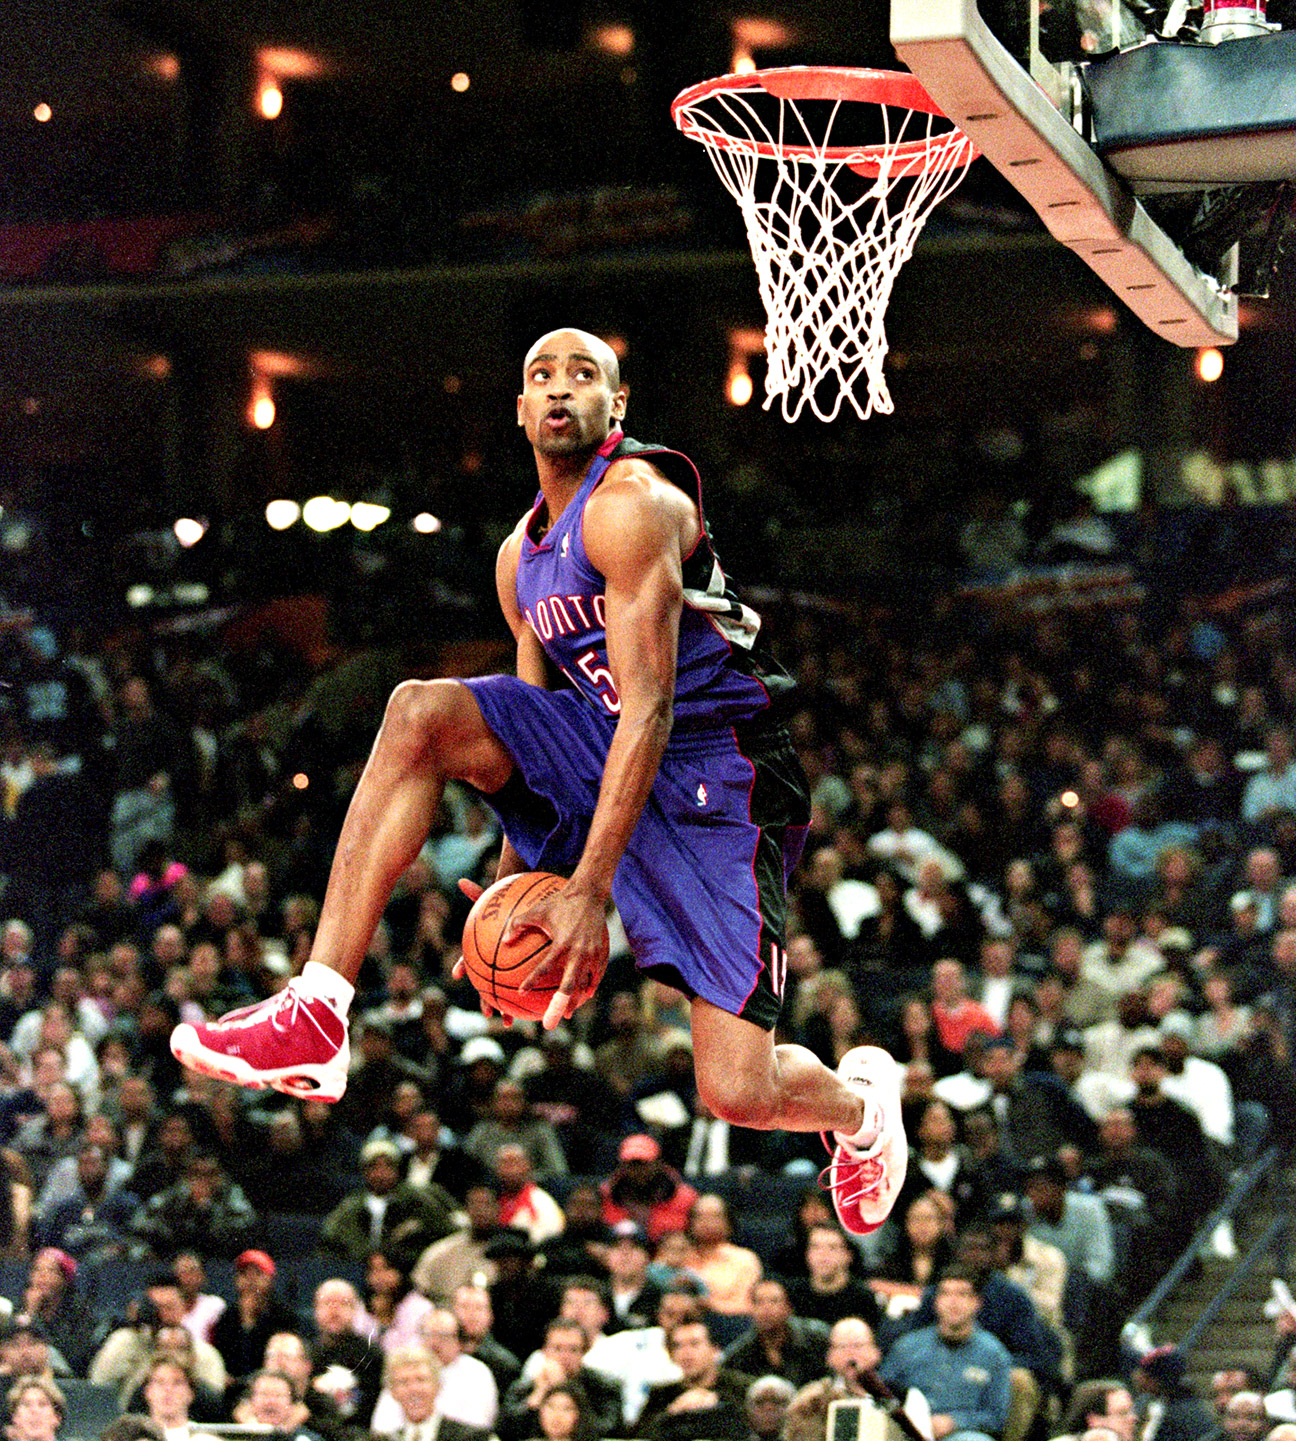 Tracy Mcgrady And Vince Carter Raptors Vince carterTracy Mcgrady Dunk